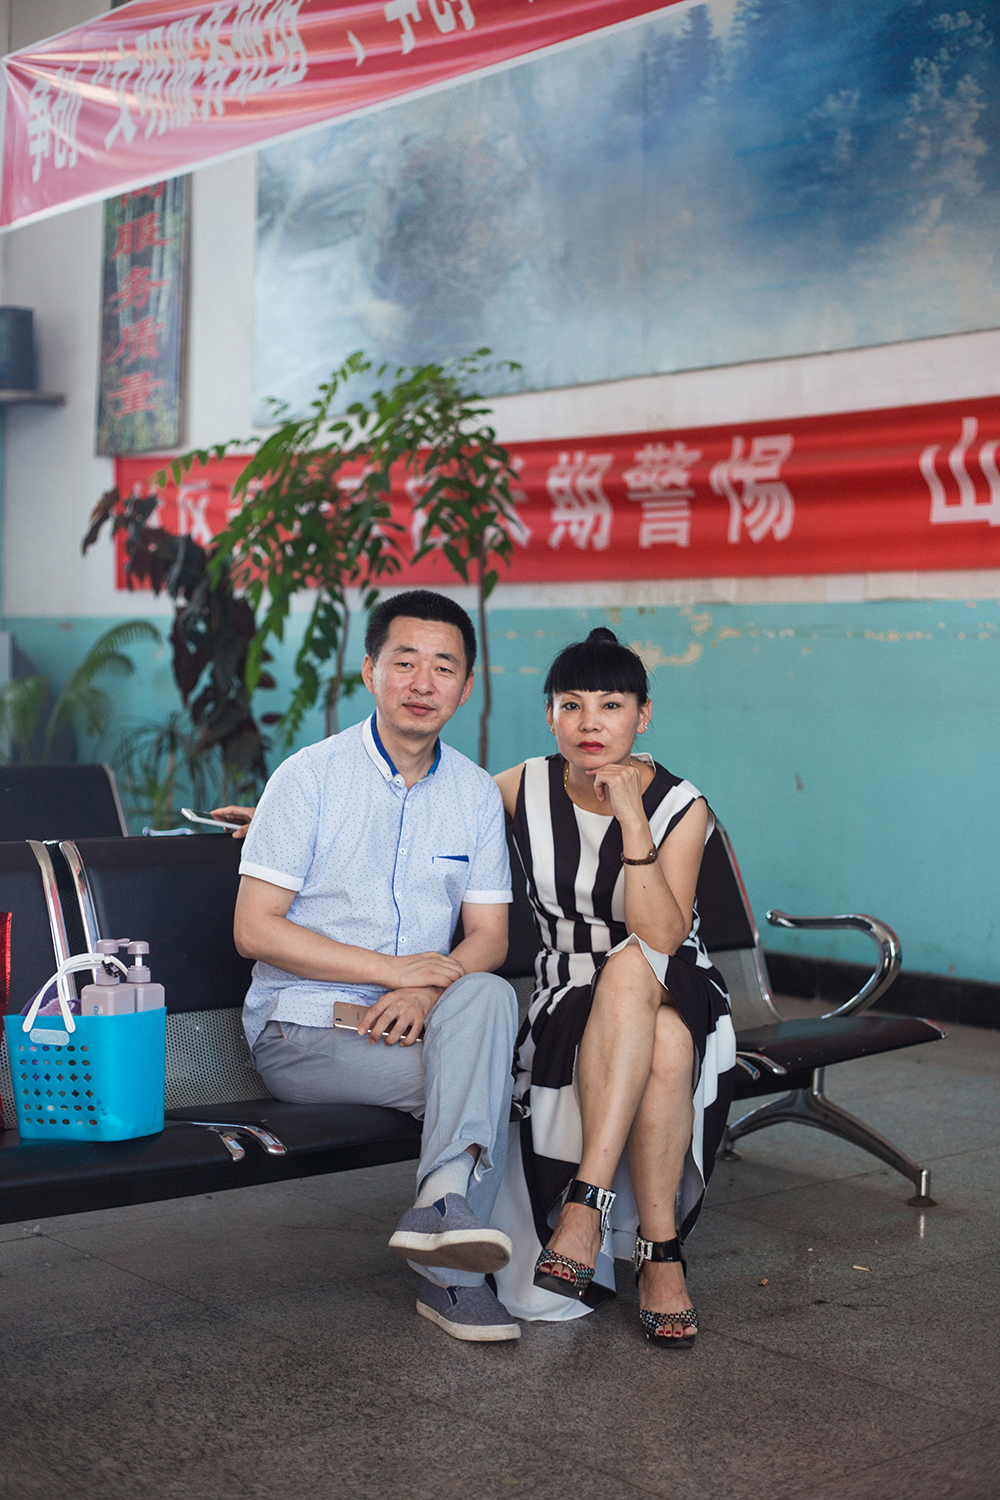 Couple in the bus station, Heilongjiang Province, China, 2017